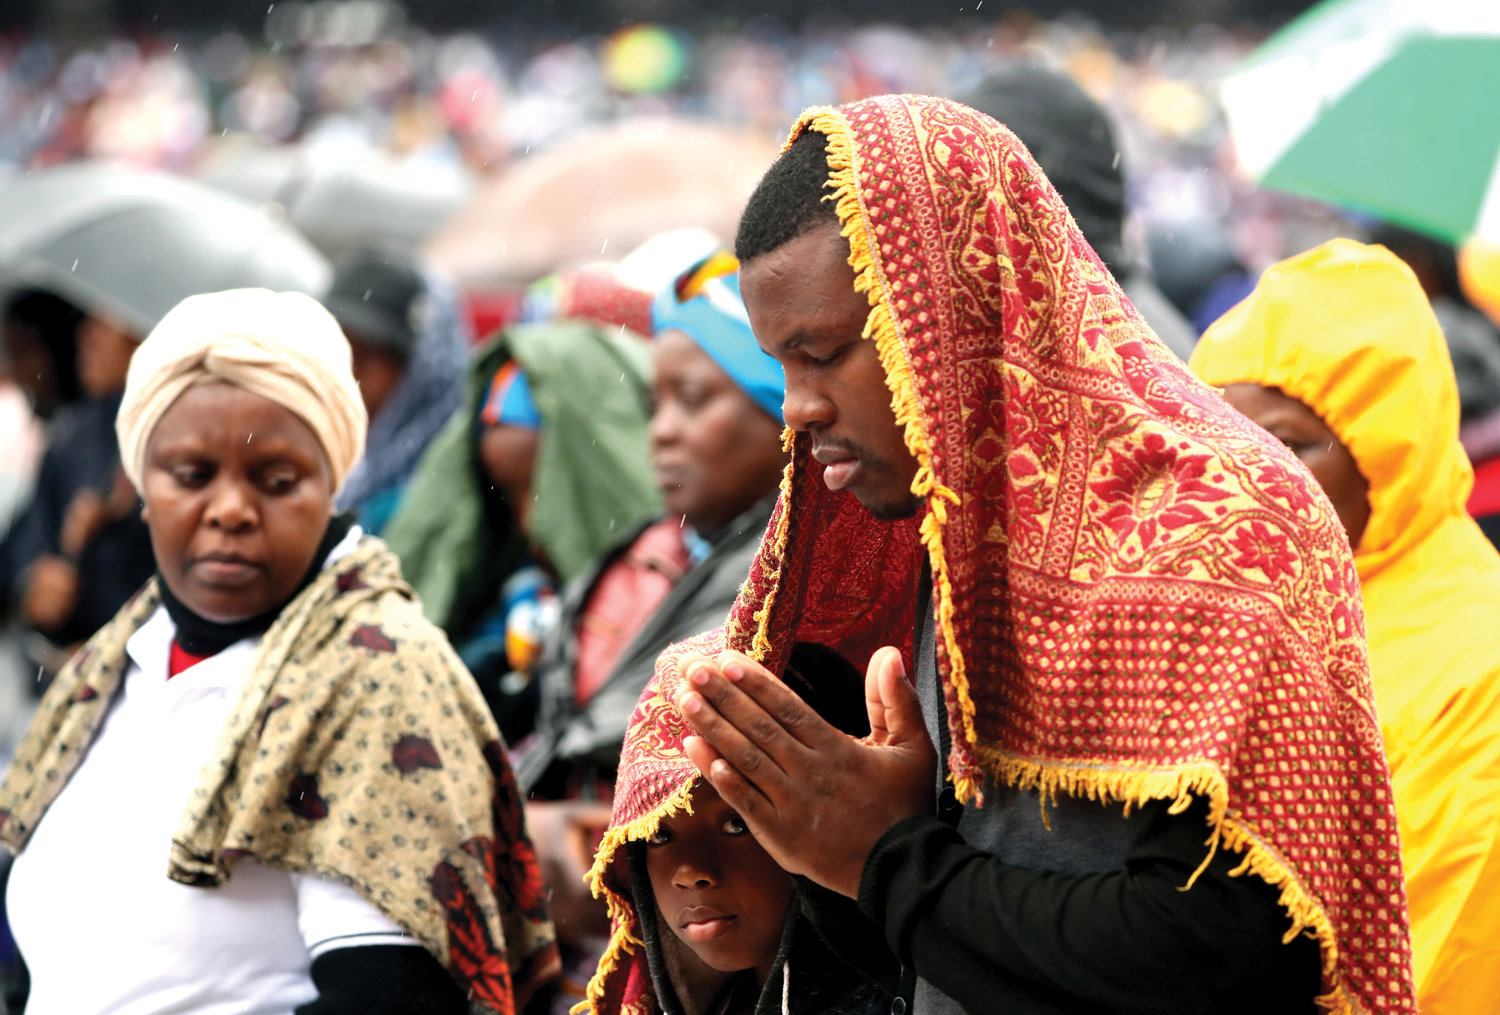 A man prays alongside a child as the pope celebrates Mass in Zimpeto Stadium outside Maputo, Mozambique, Sept. 6.